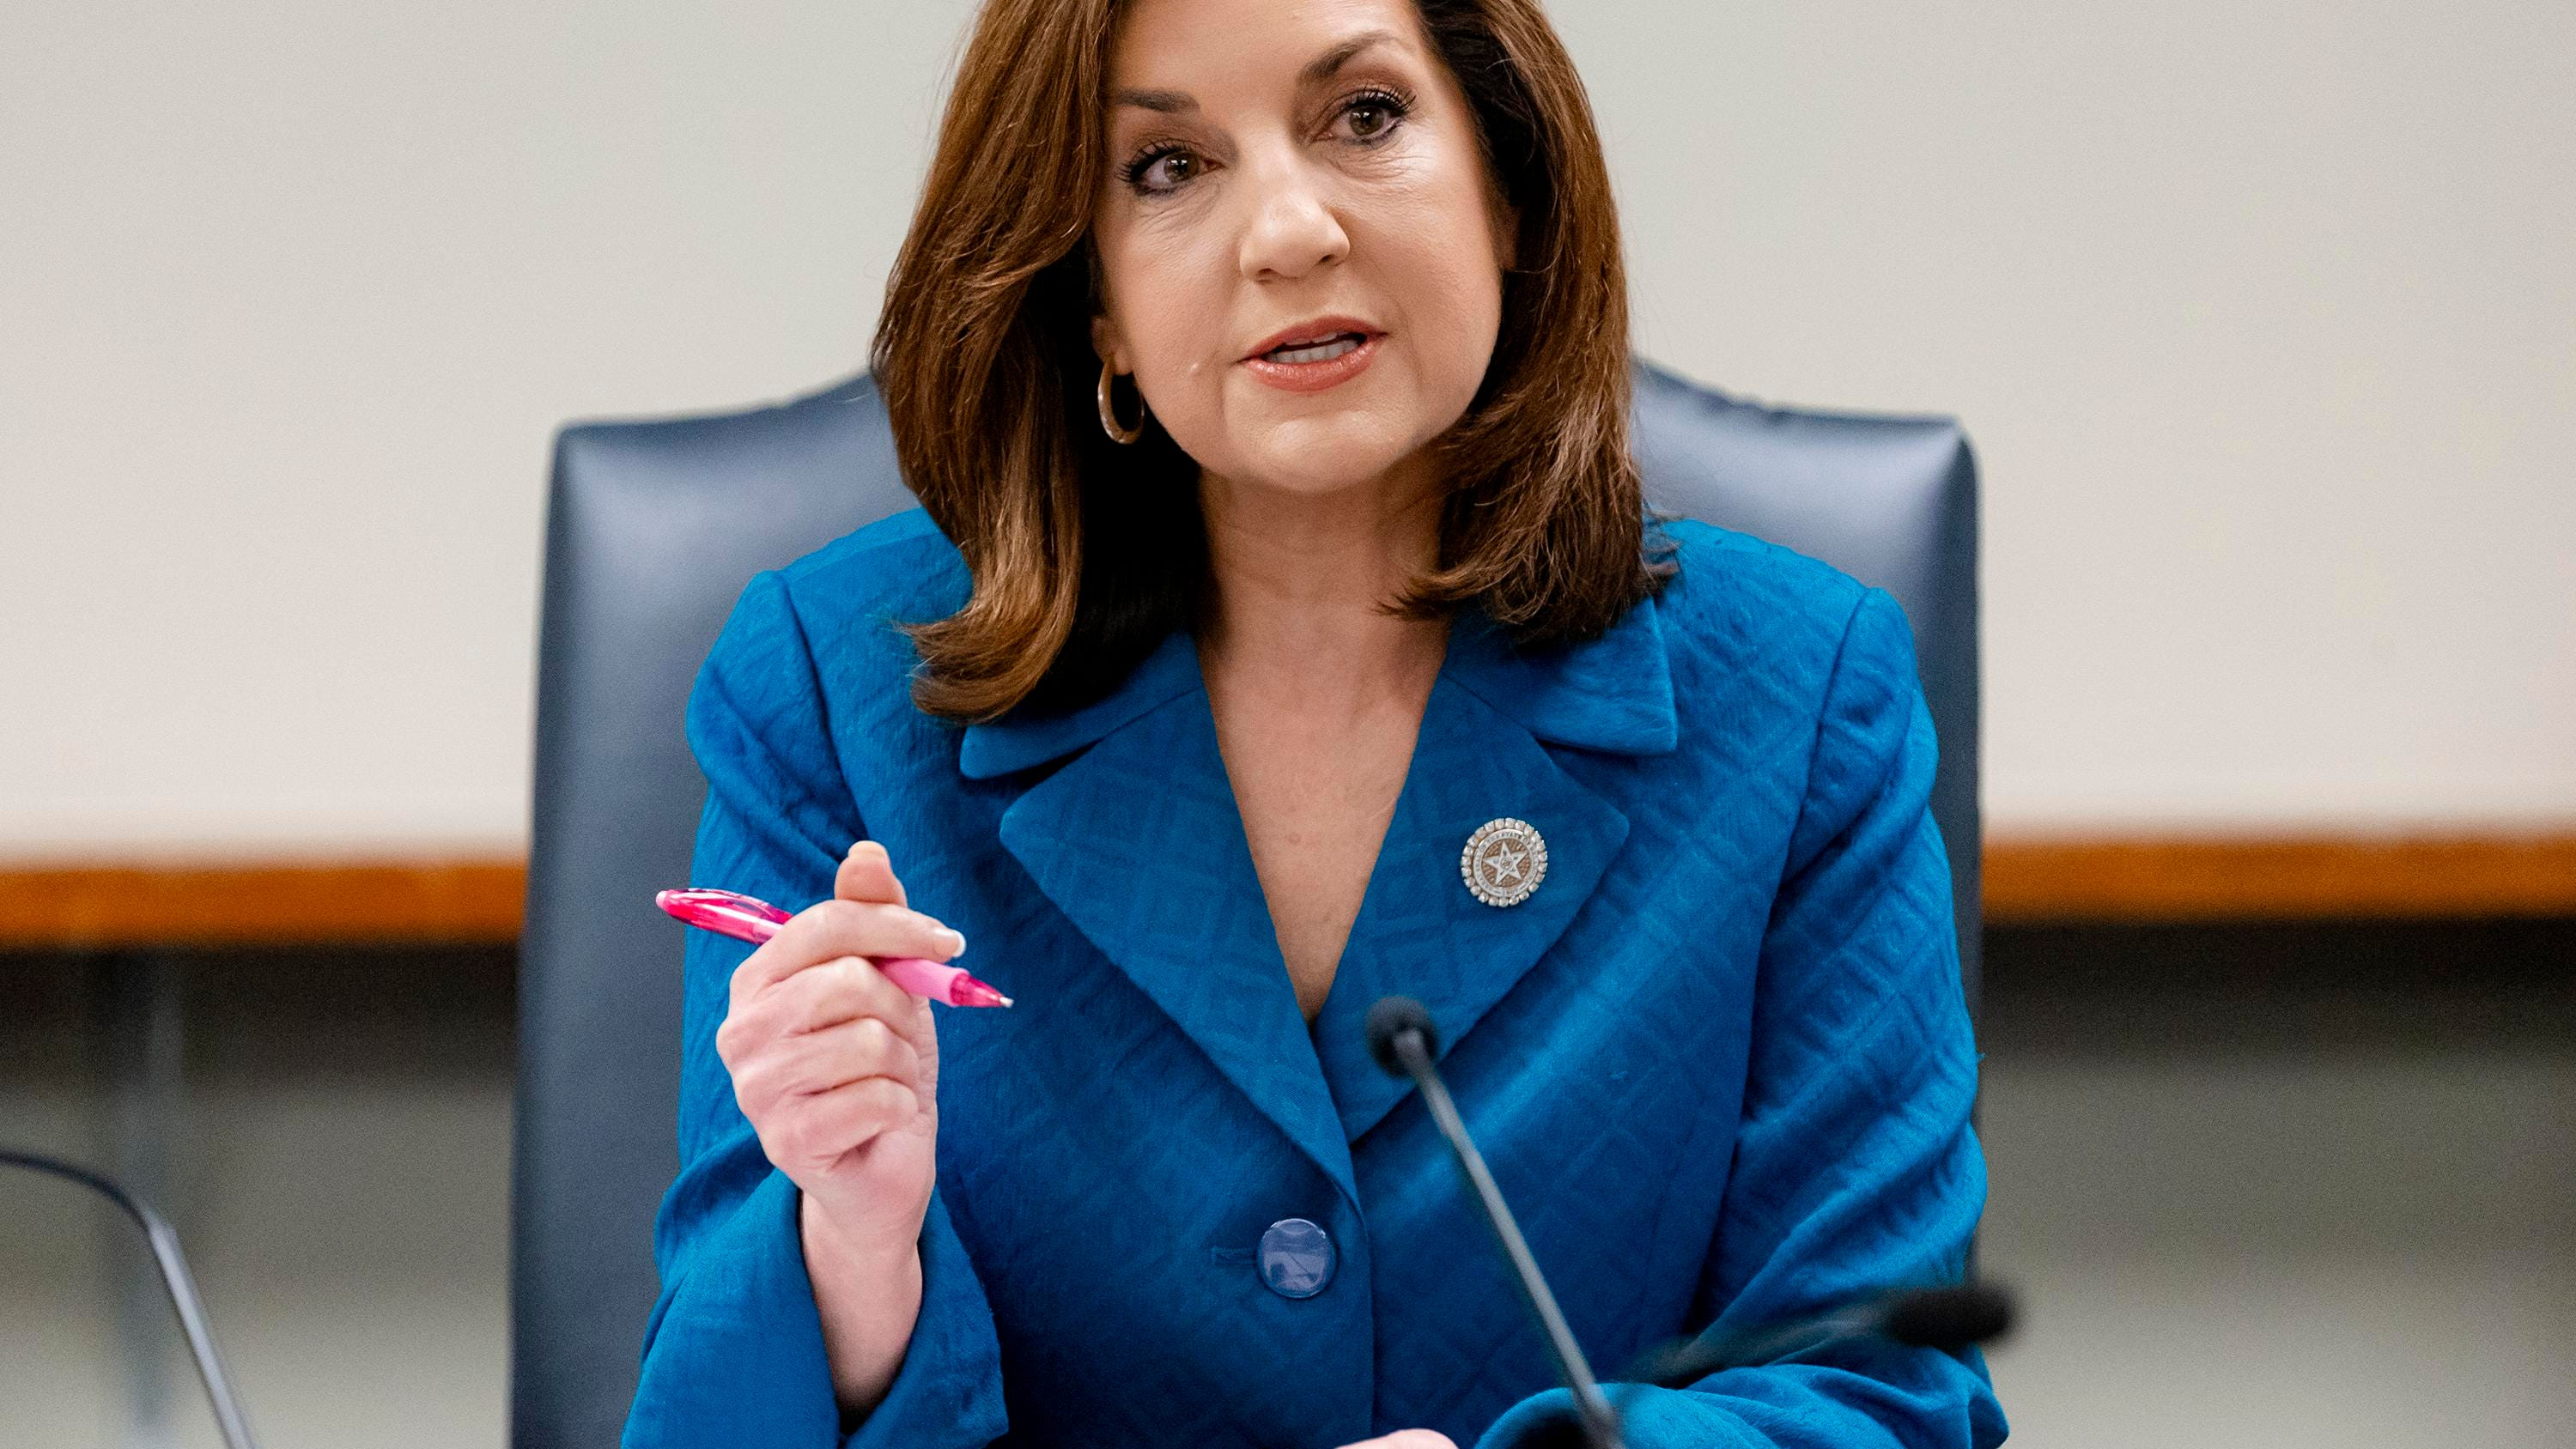 Oklahoma's State Superintendent of Public Instruction Joy Hofmeister says she's switching to the Democratic Party to challenge Gov. Kevin Stitt for governor next year.